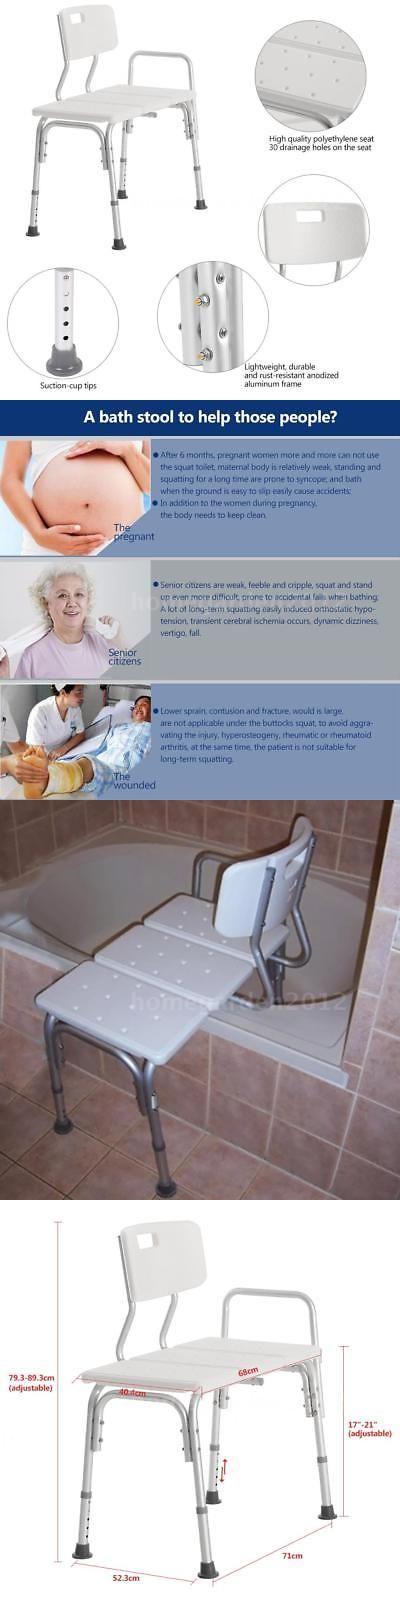 Transfer Boards and Benches: Shower Seat Medical Adjustable Bath Tub Transfer Bench Stool Chair White H8j4 -> BUY IT NOW ONLY: $48.89 on eBay!